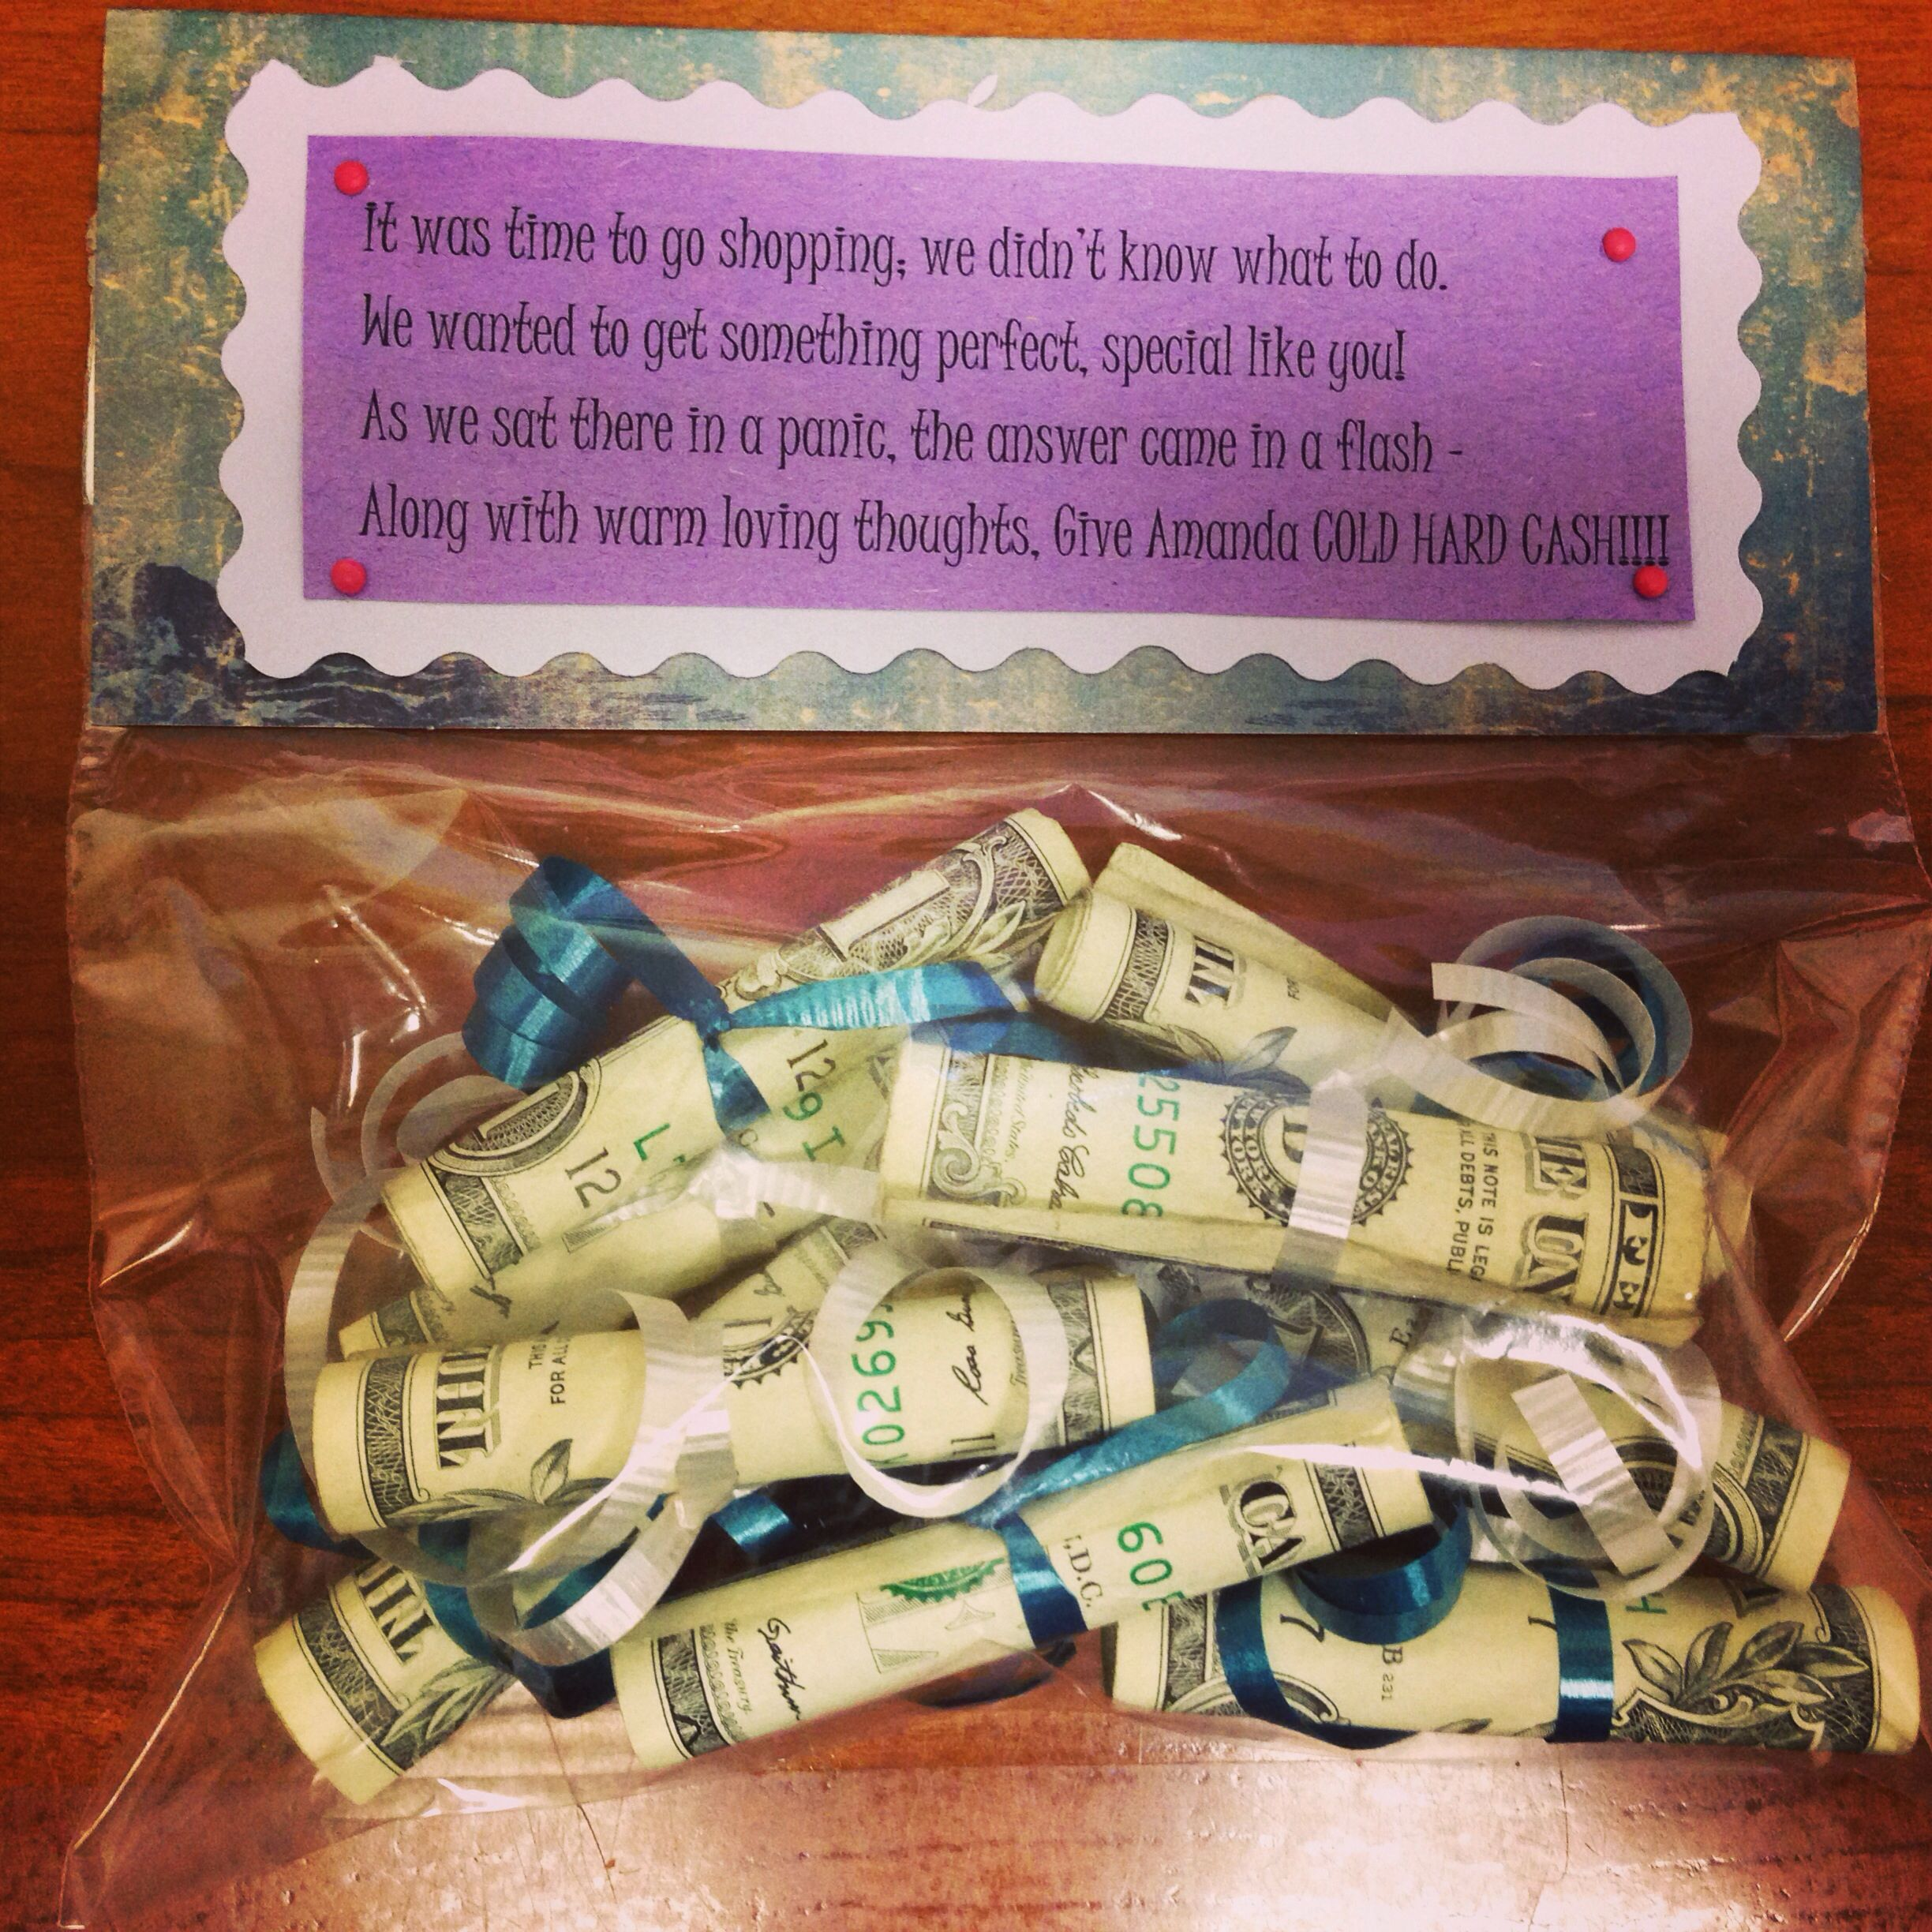 Made Another Cold Hard Cash Gift For My 9 Year Old Niece Amanda Got This From Her Auntie Last Week Super Cute Idea 3